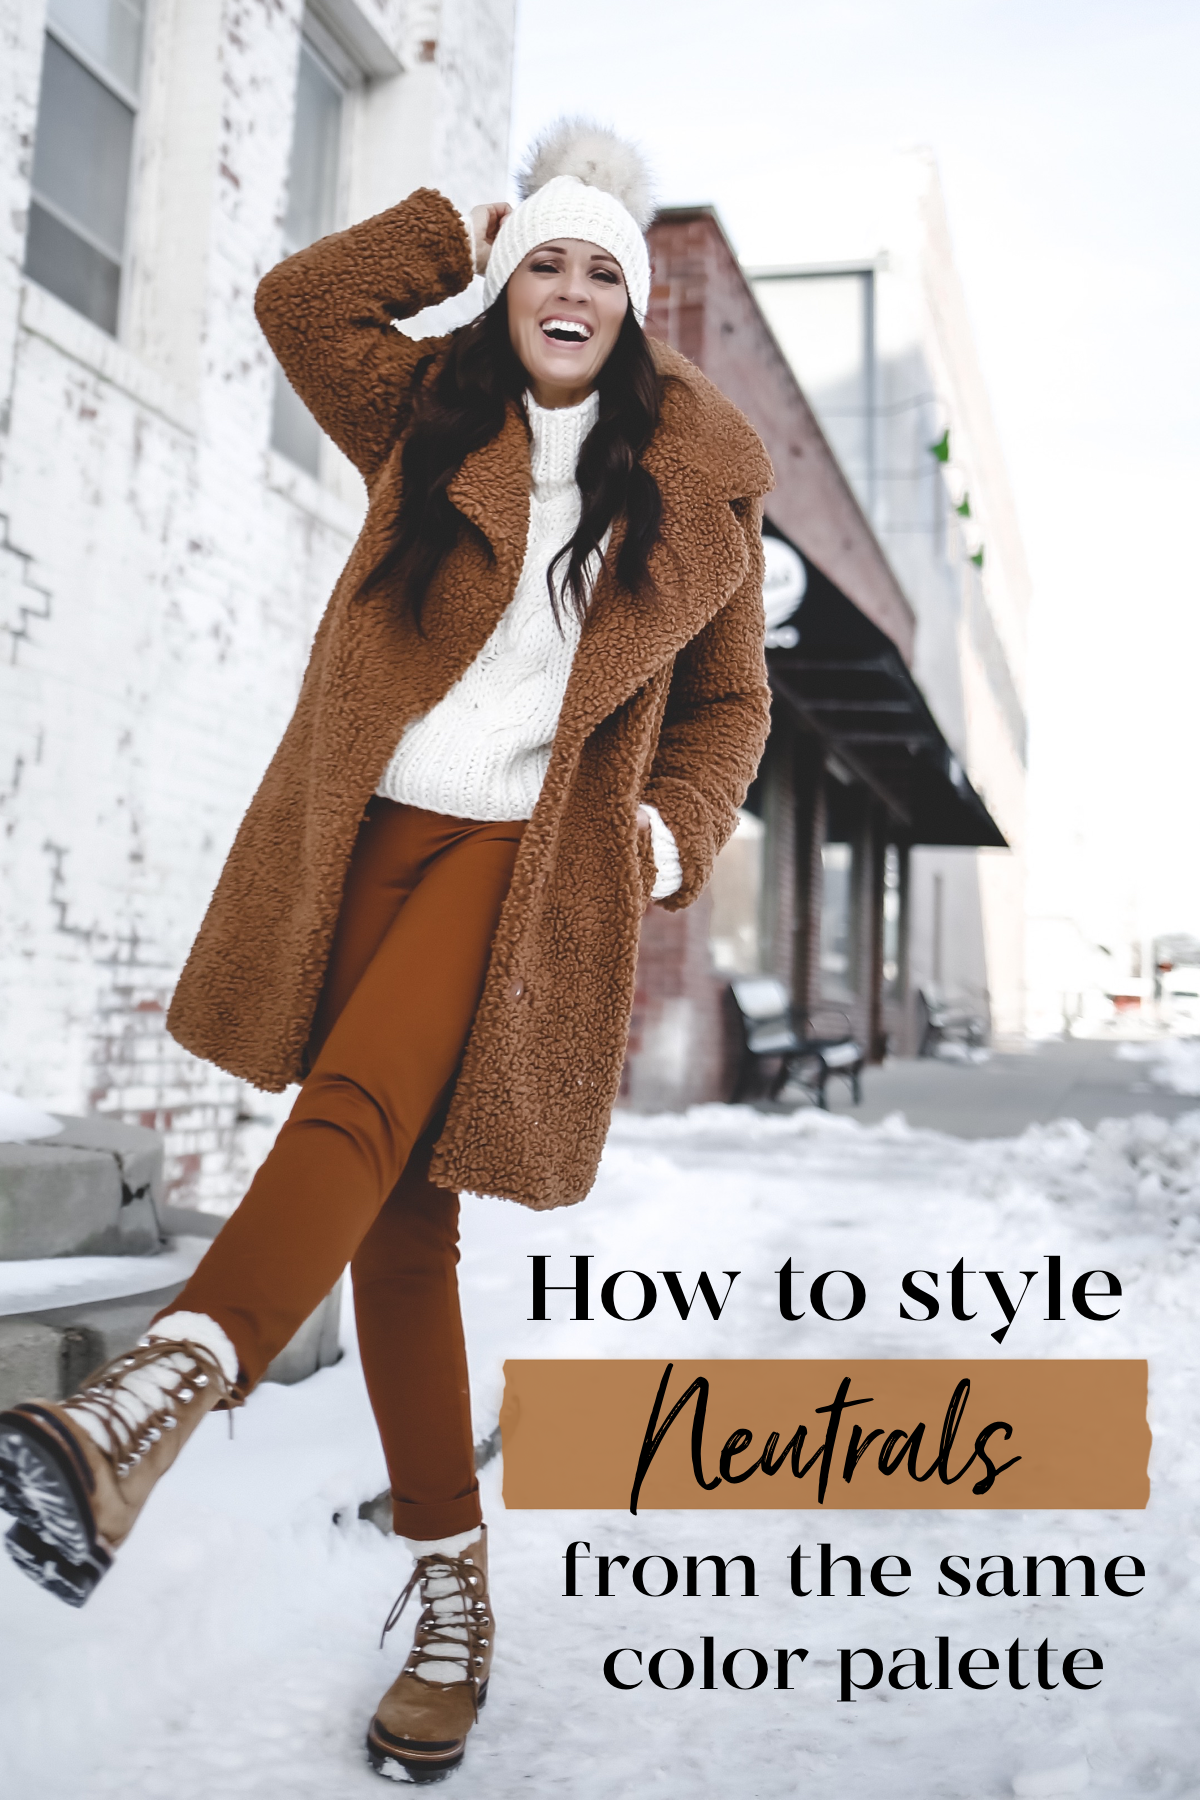 how to layer neutrals teddy coat sherpa coat camel coat pom beanie layering neutrals winter neutral outfit kyikyi faux fur pom beanie palmer clothing target style